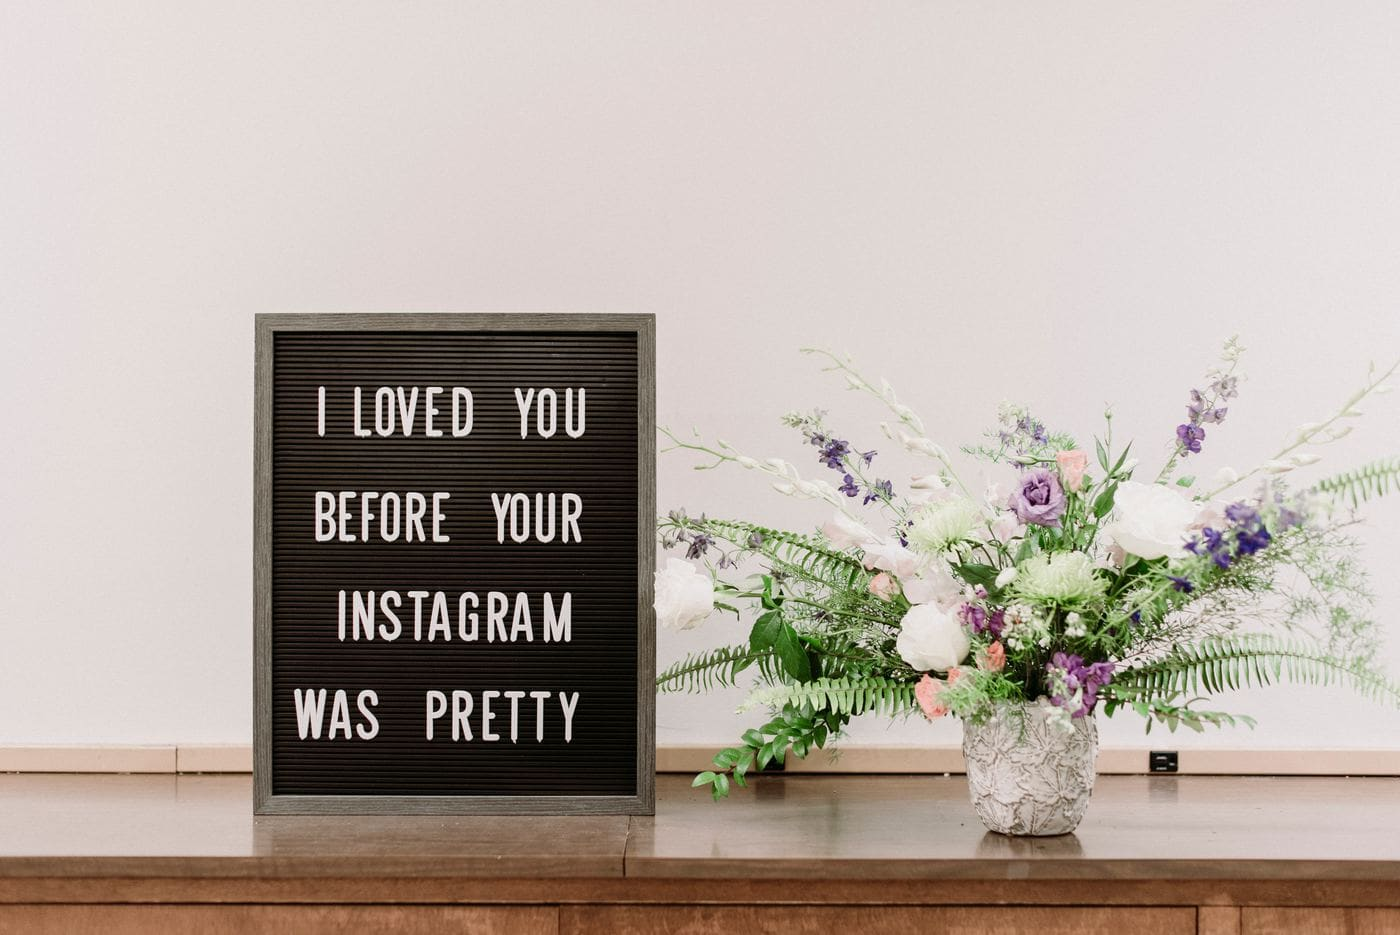 Follow people you love on Instagram, even before their content is pretty.